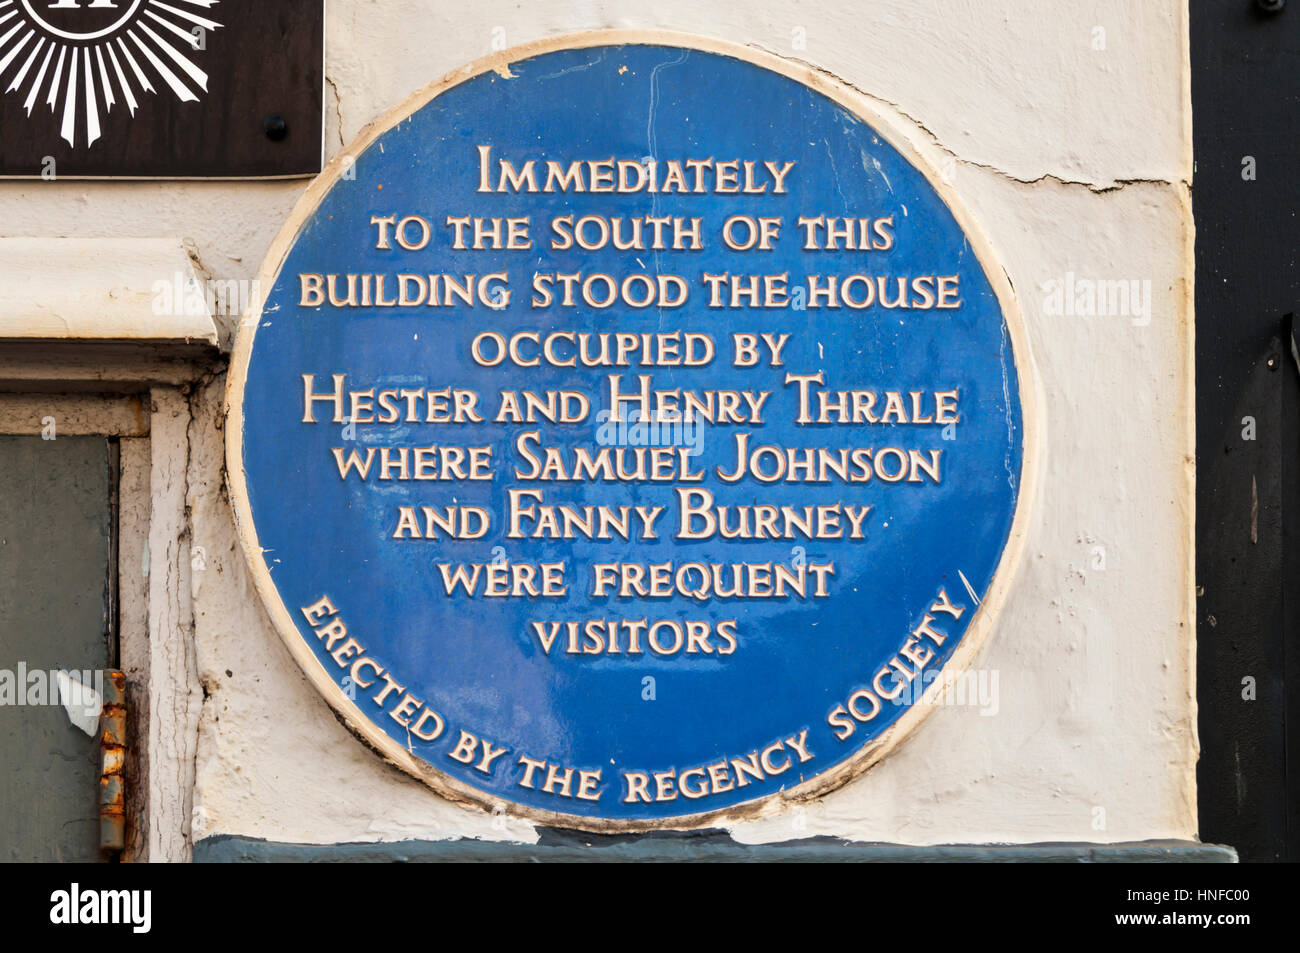 A blue plaque in Brighton commemorates Hester and Henry Thrale and their visitors Samuel Johnson and Fanny Burney. - Stock Image